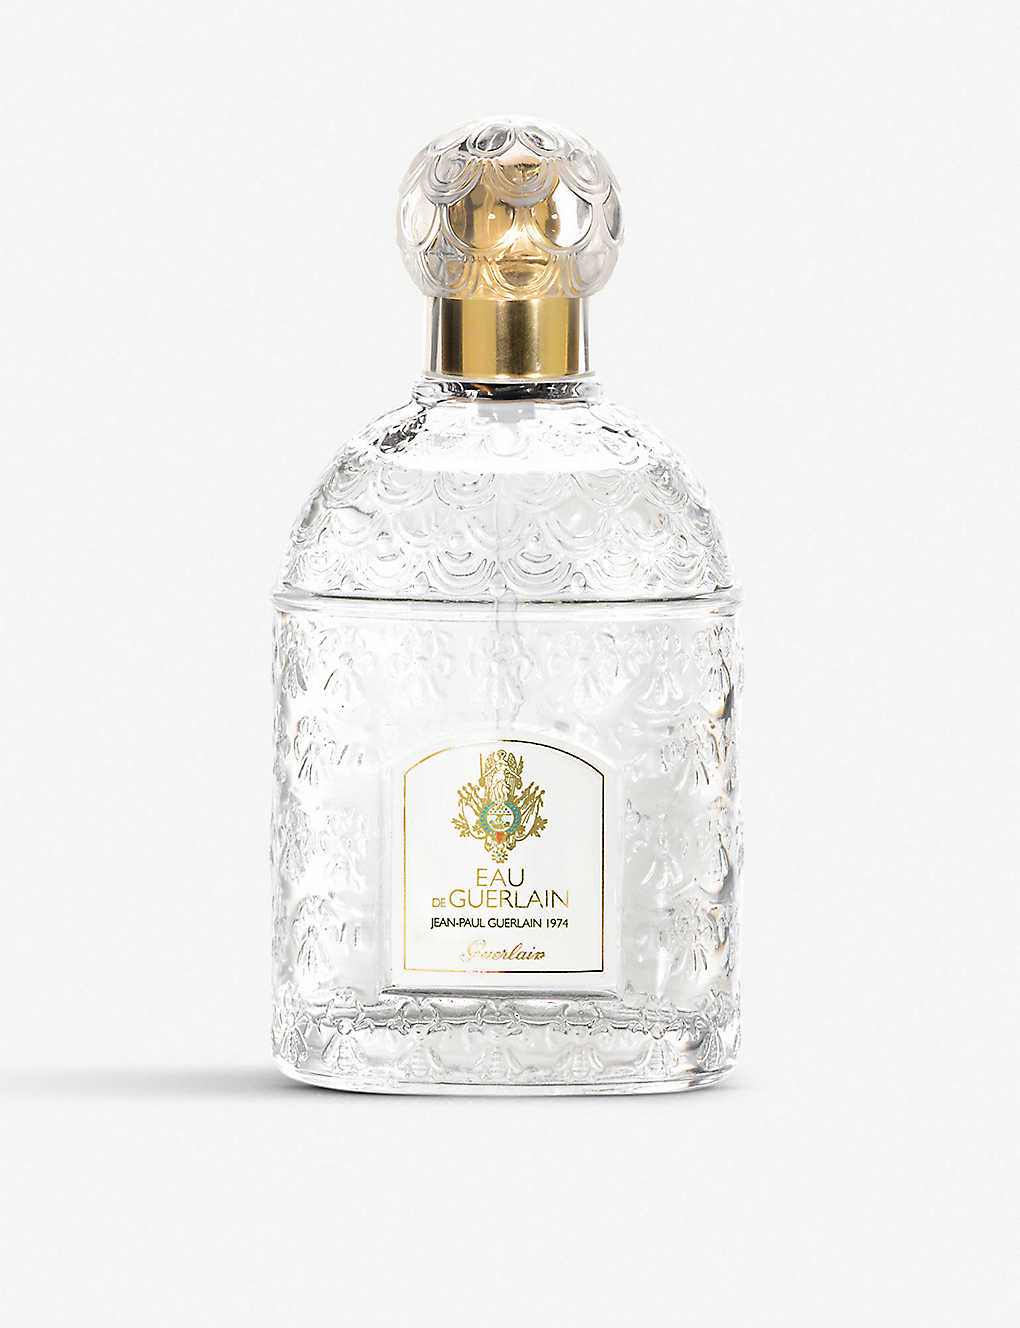 GUERLAIN: Eau de Guerlain eau de toilette natural spray 100ml